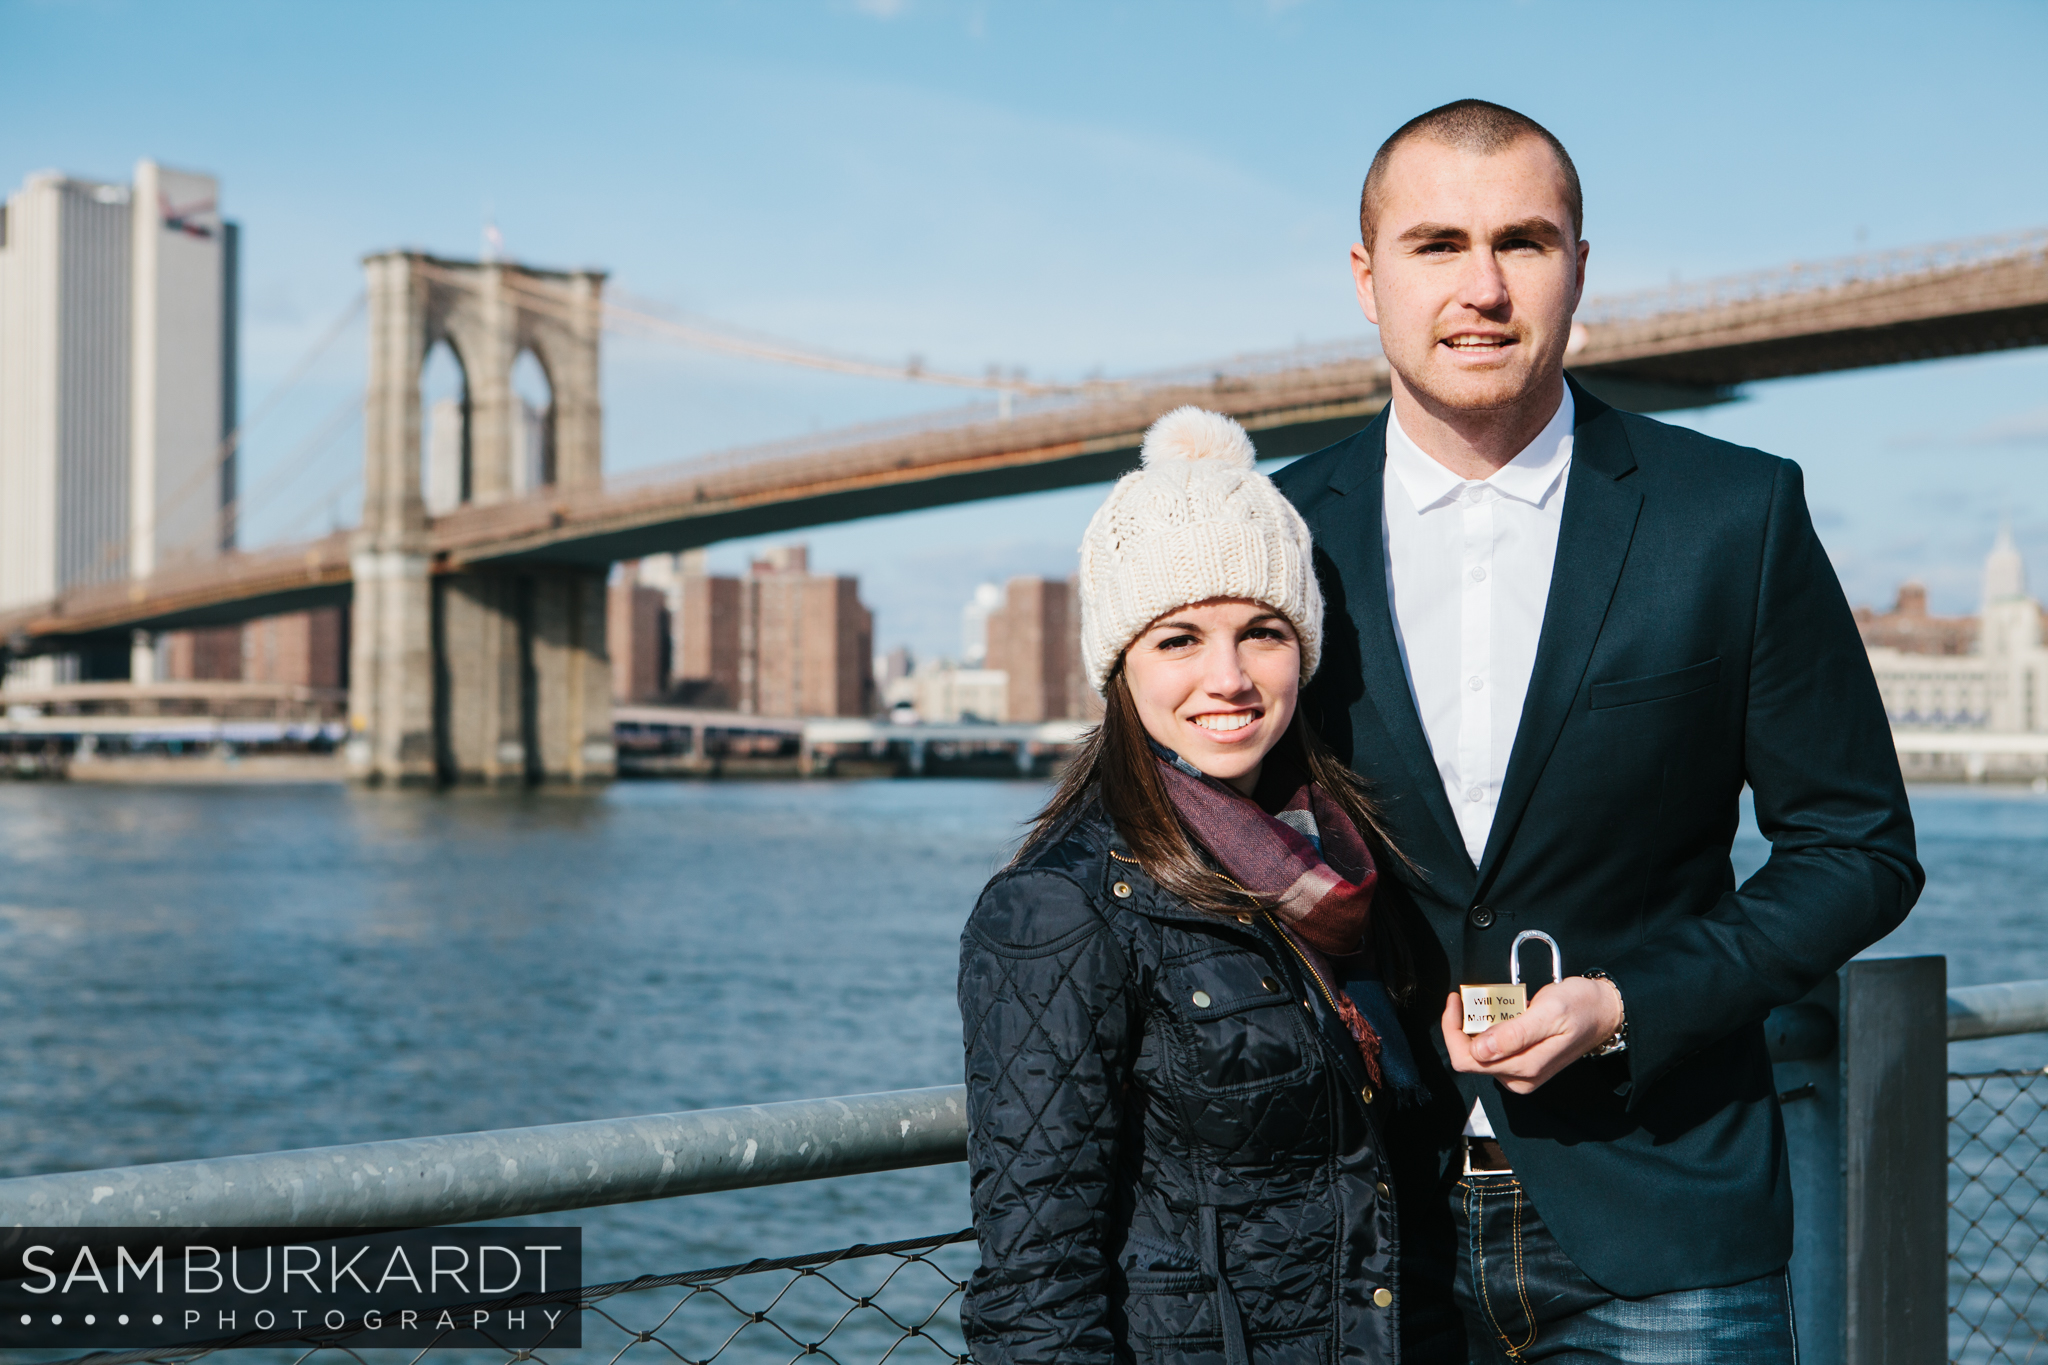 samburkardt_brooklyn_bridge_new_york_engagement_proposal_skyline_0009.jpg